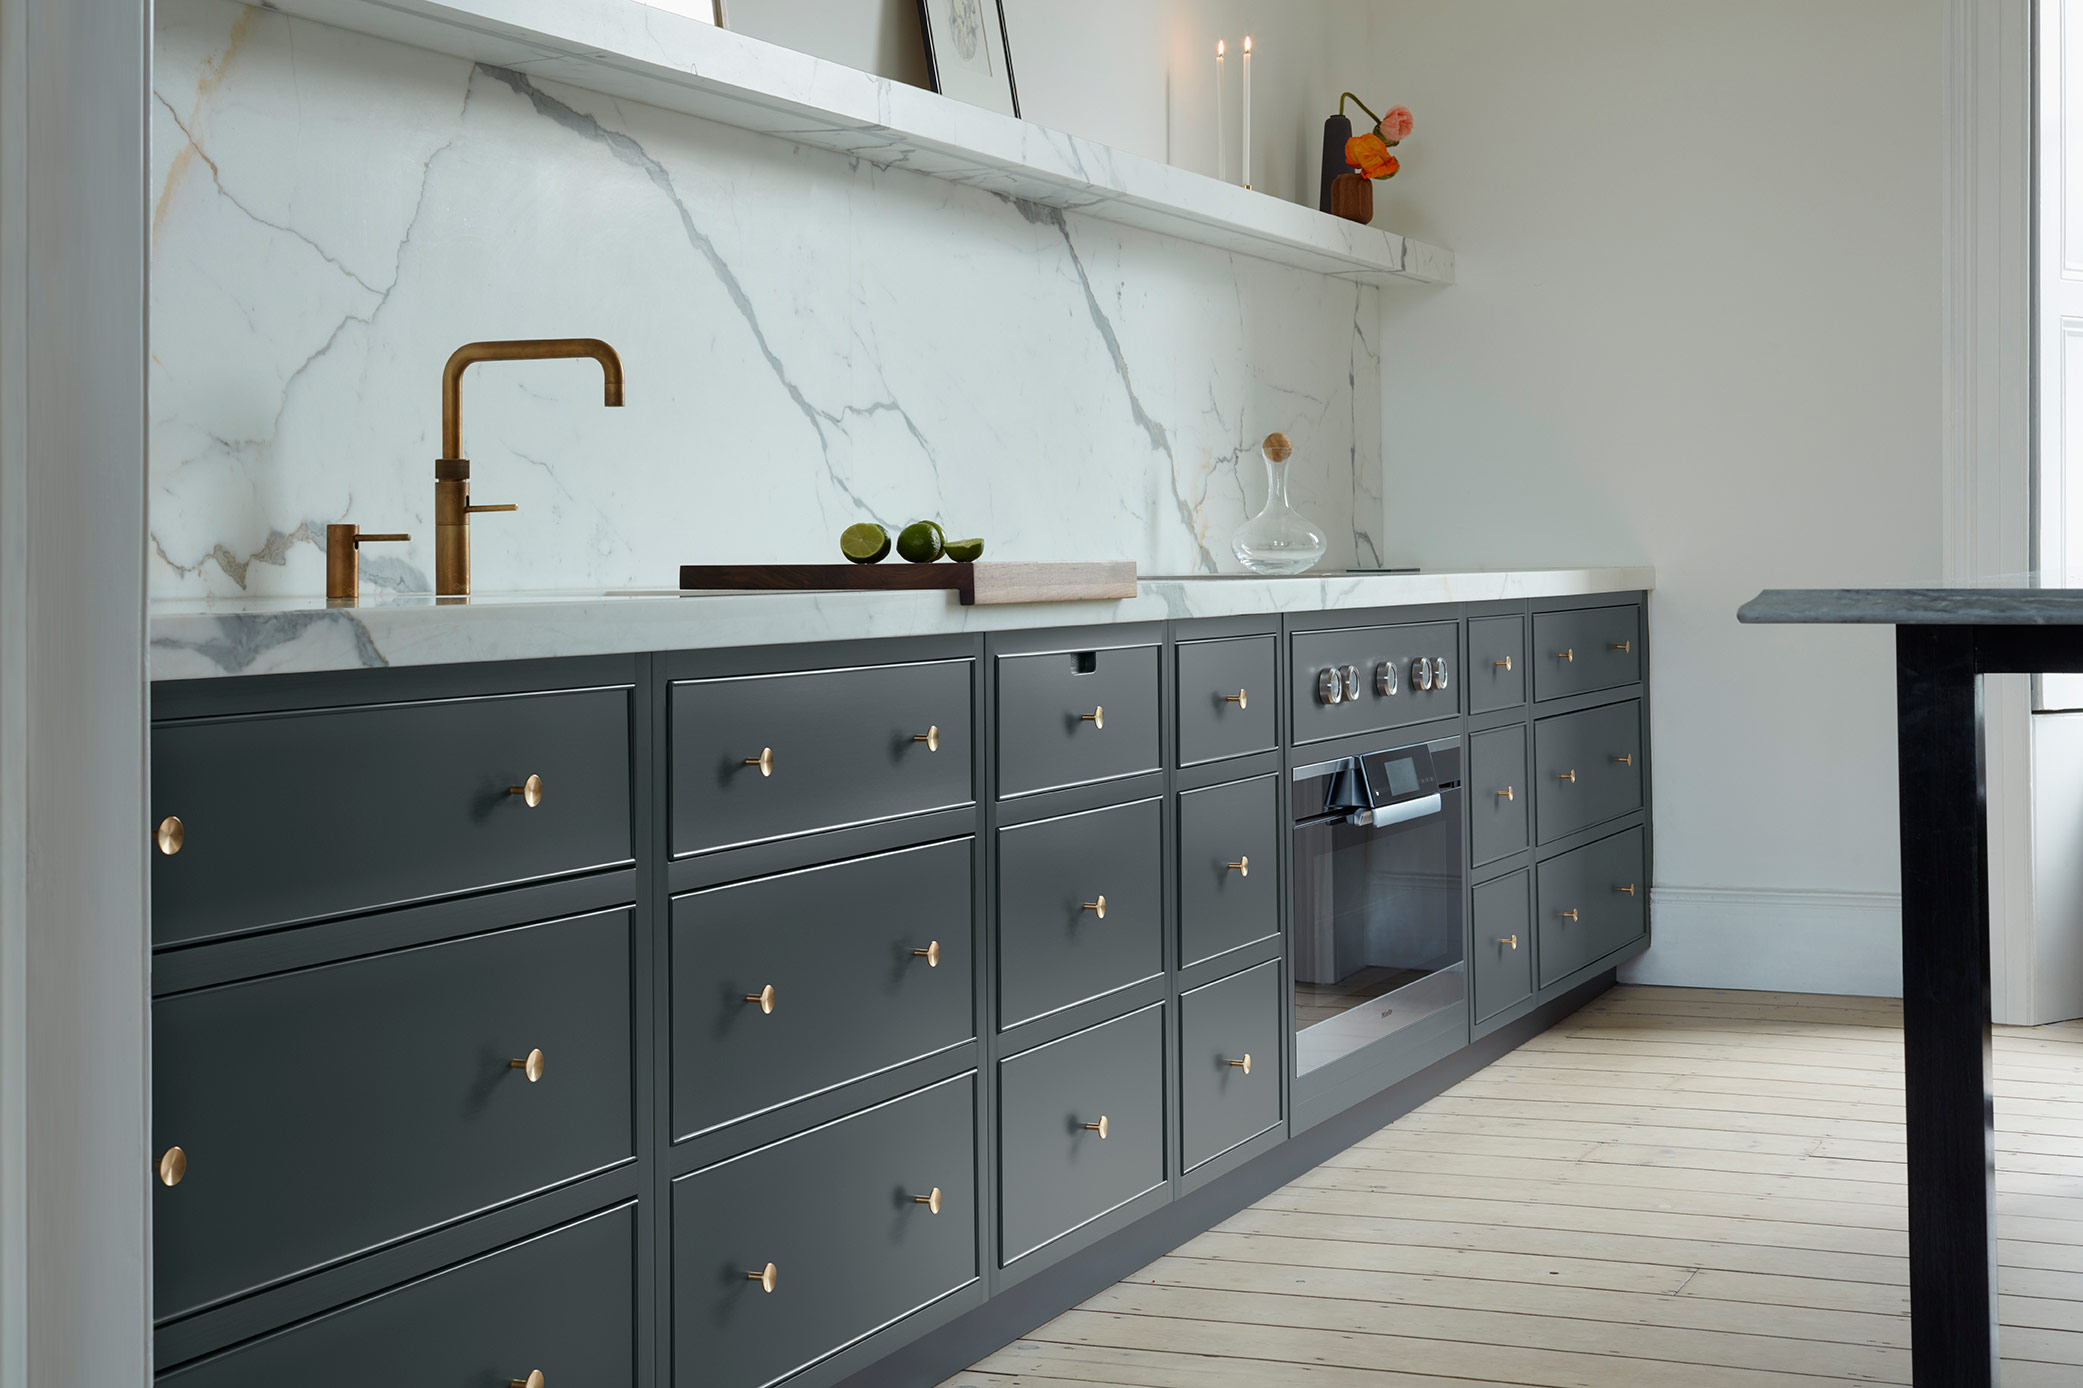 P&J – Rathgar – Kitchen Cabinets